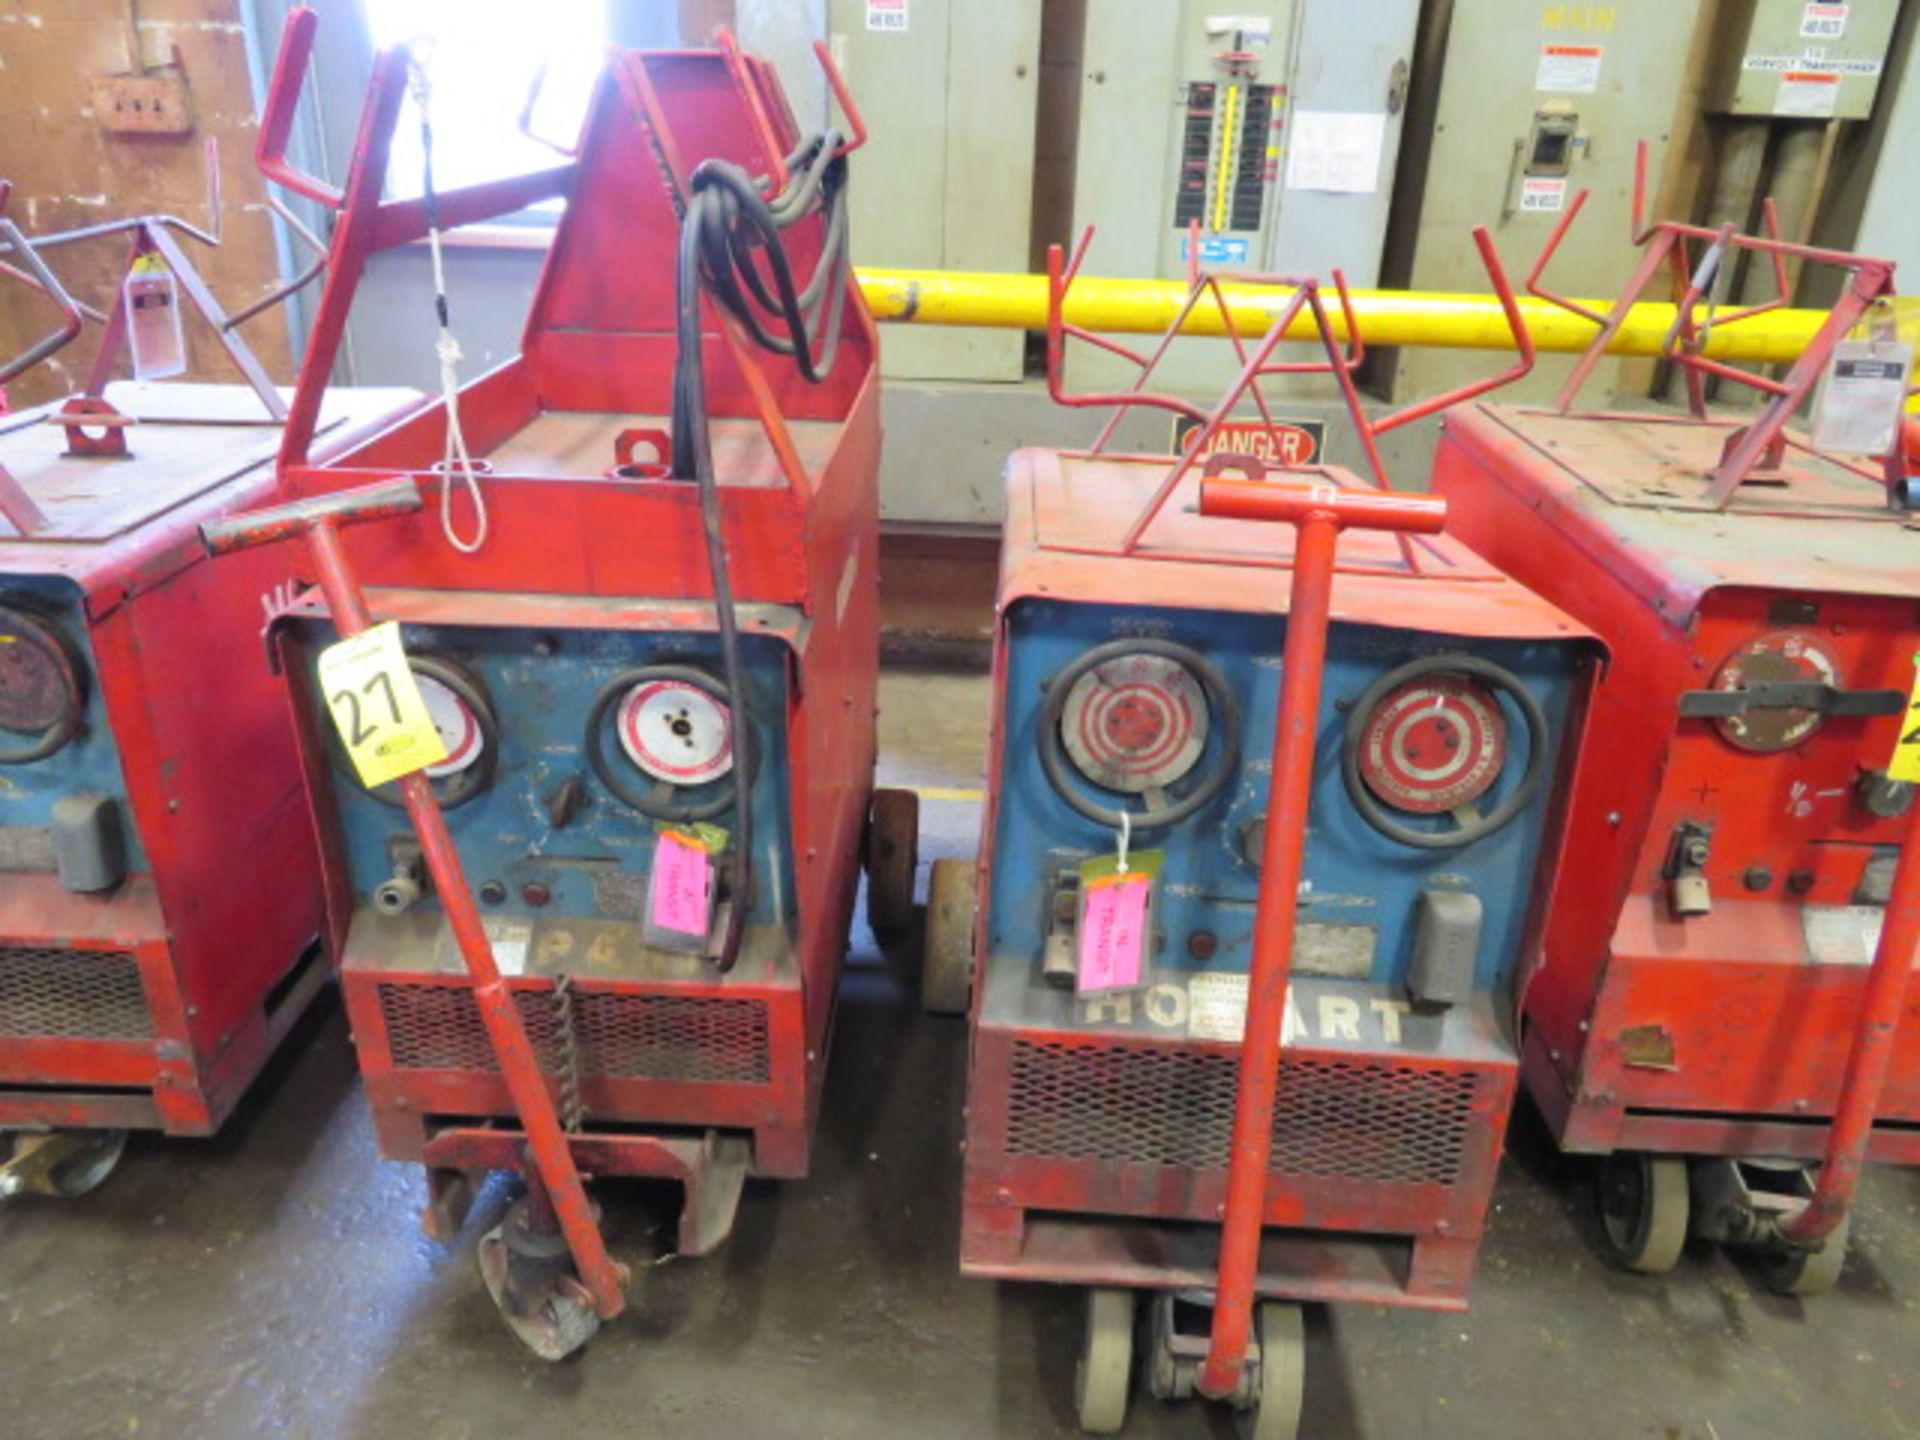 Lot 27 - (2) HOBART TR300 TIG WELDERS W/CARTS, CUT POWER CORDS